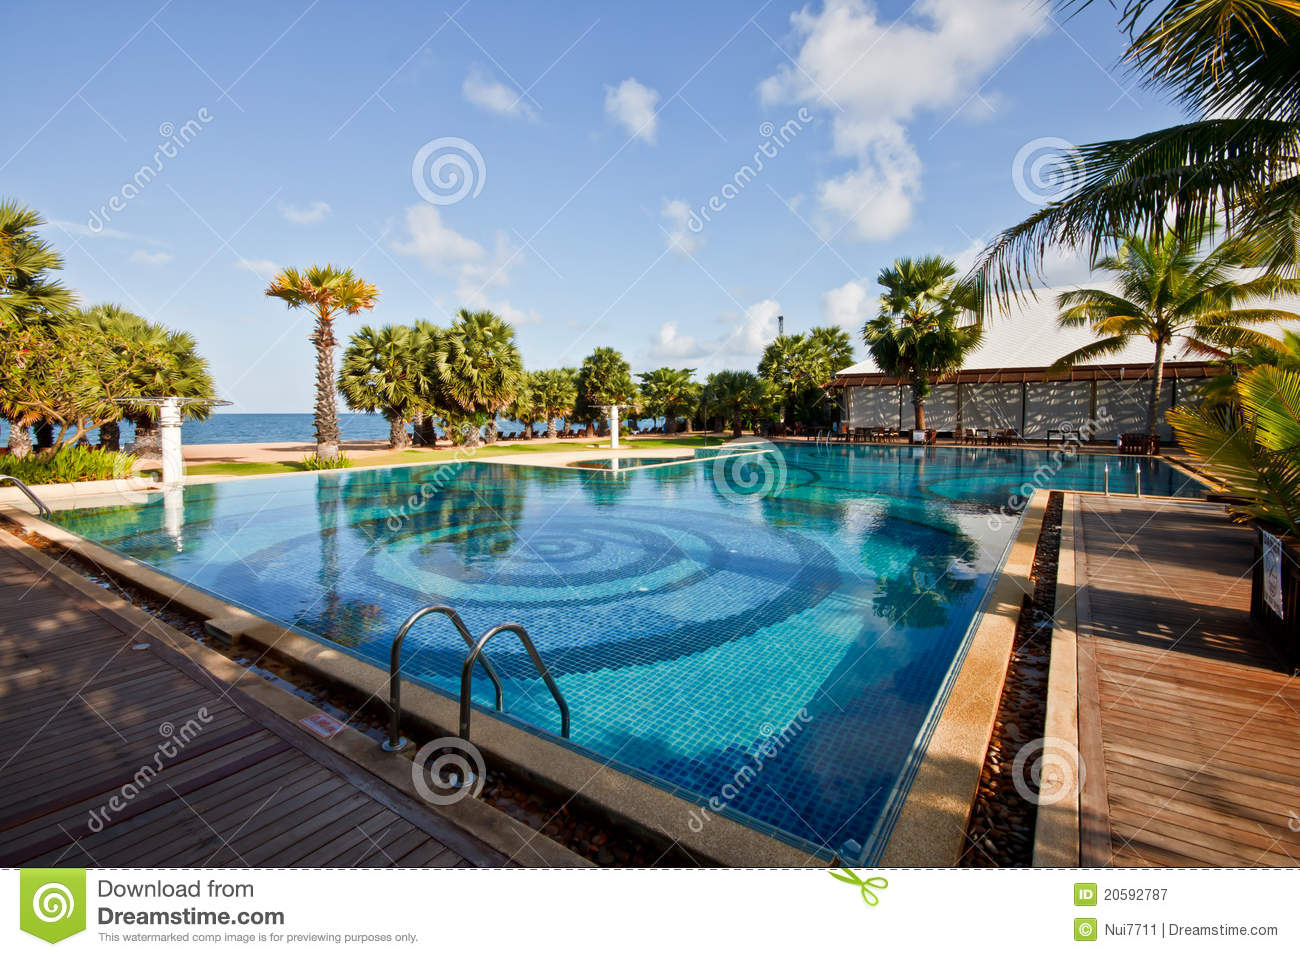 Swimming pool of a hotel near the pattaya beach stock for Swimming pool close to house